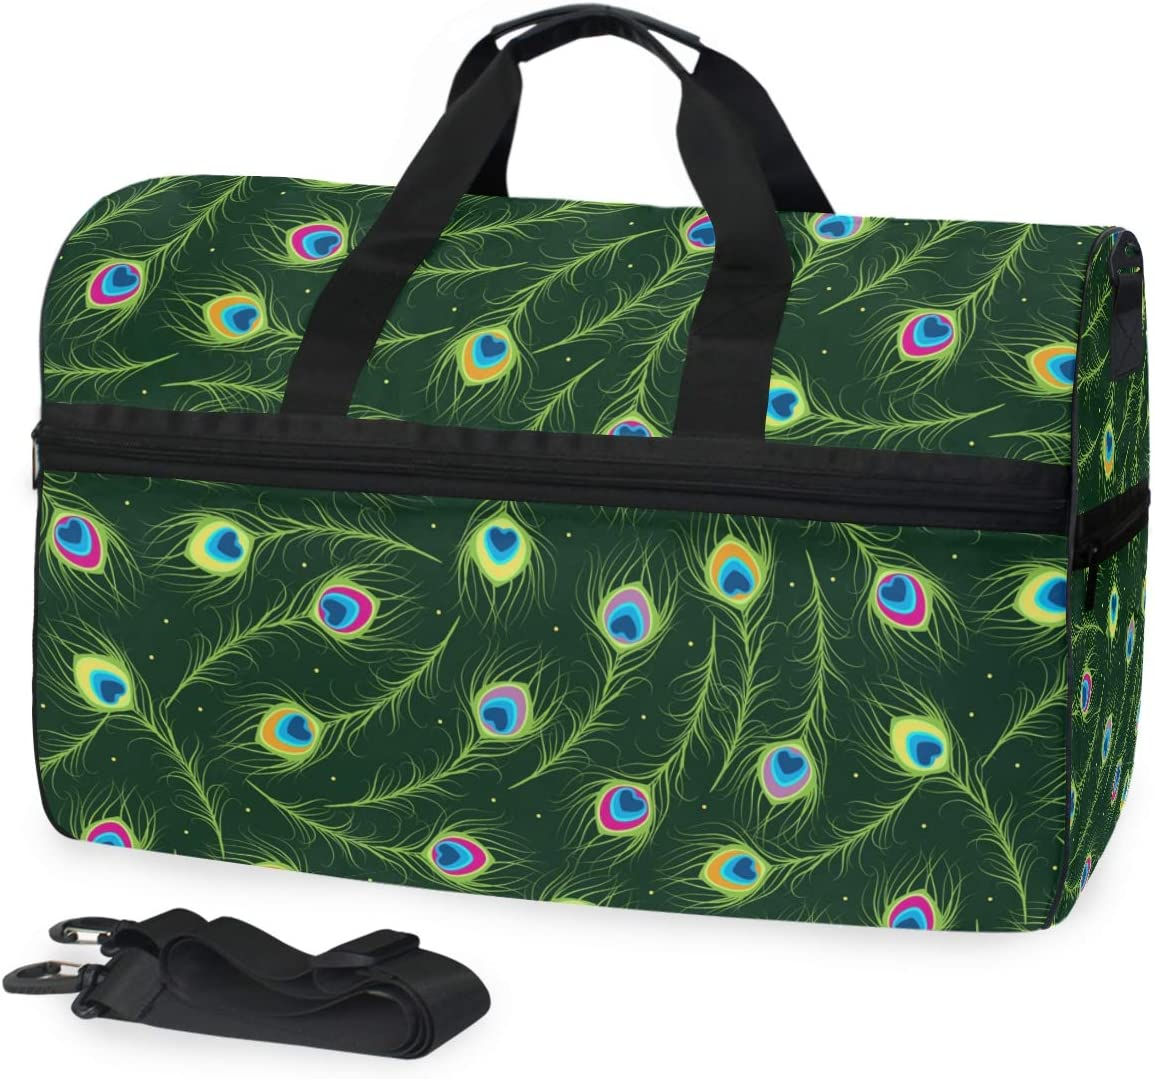 Peacock Travel Duffel Bag Luggage Sports Gym Bag With Shoes Compartment Large Capacity Lightweight Duffle Bag For Men Women